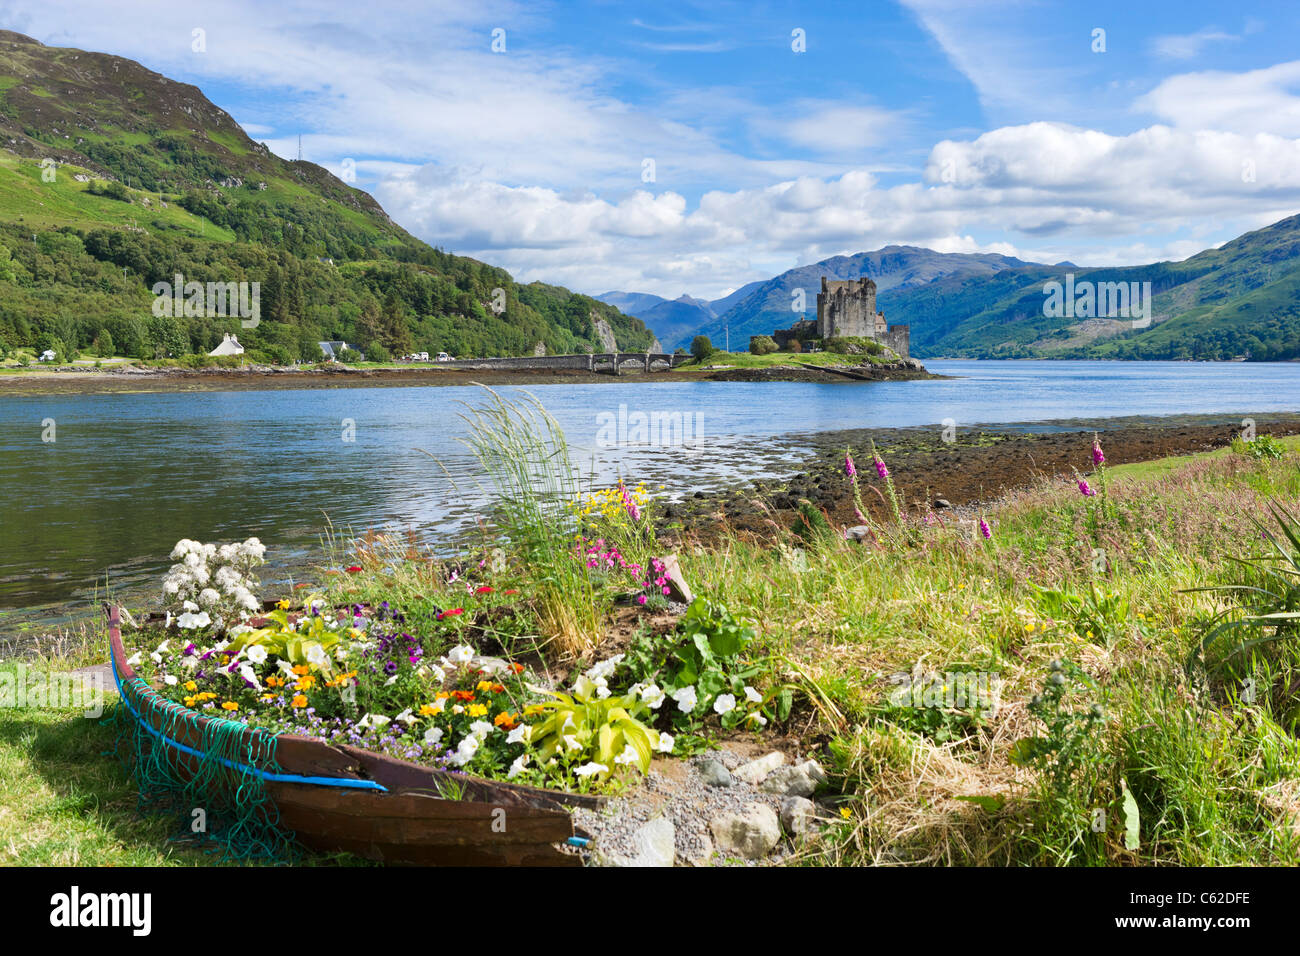 View towards Eilean Donan Castle, Loch Duich, Highland, Scotland, UK - Stock Image